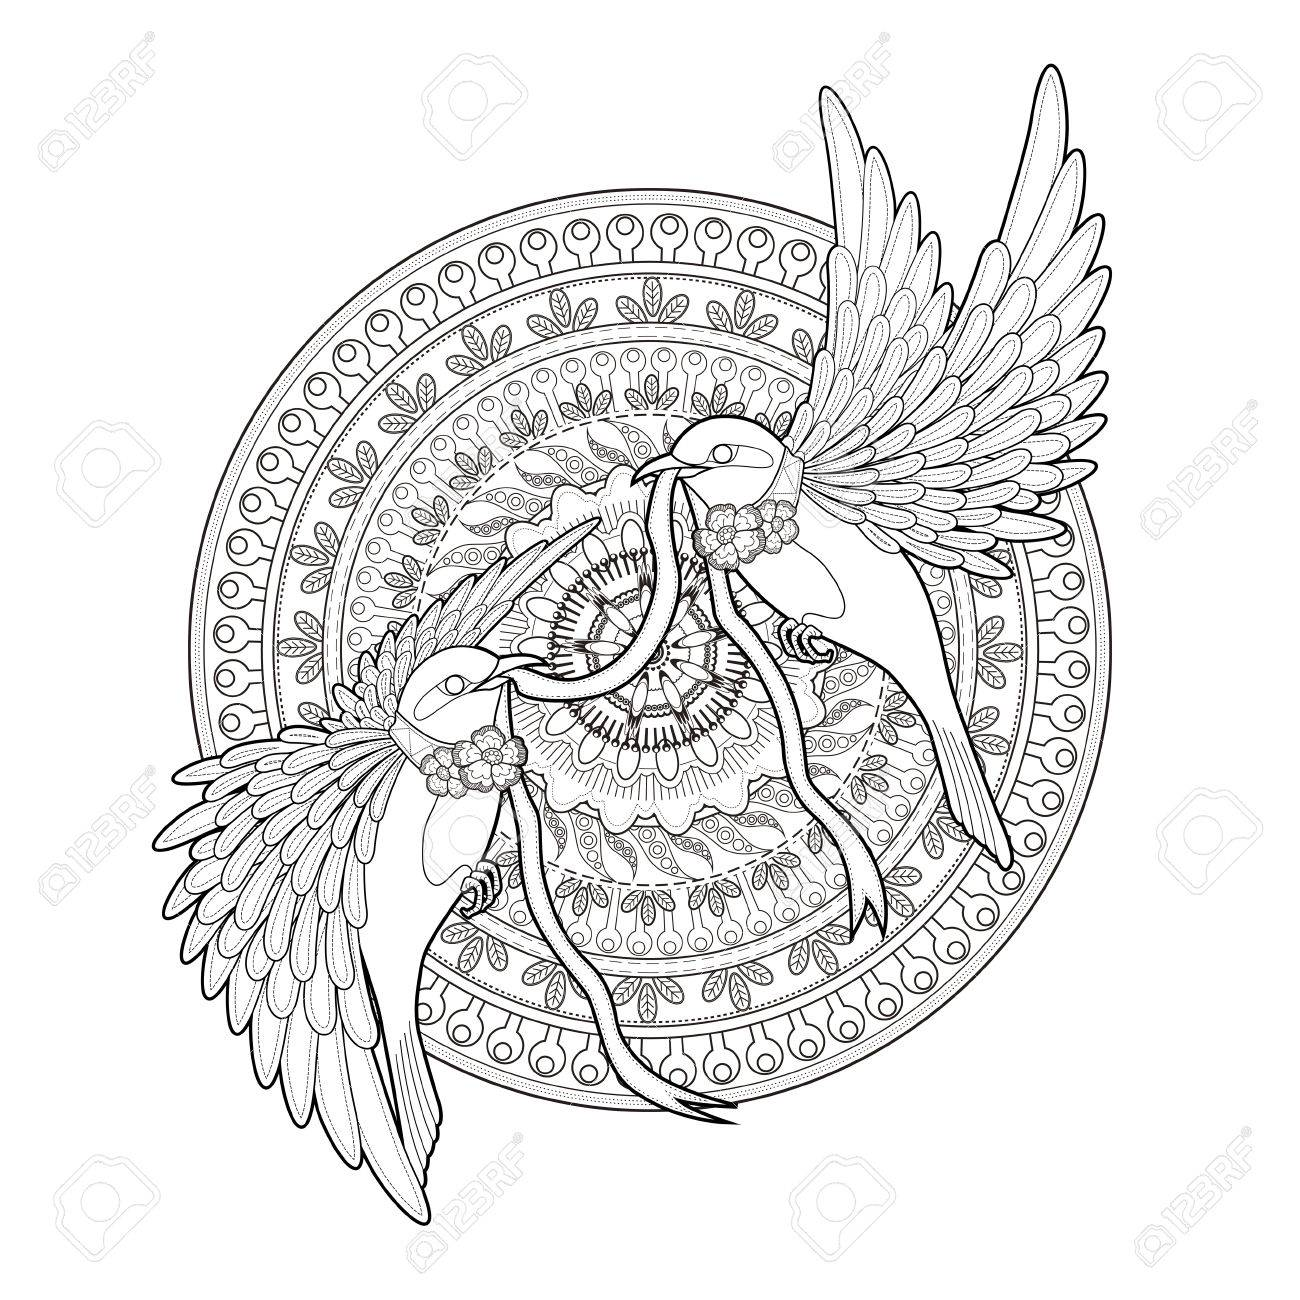 Elegant Bird Coloring Page In Exquisite Style Royalty Free Cliparts ...